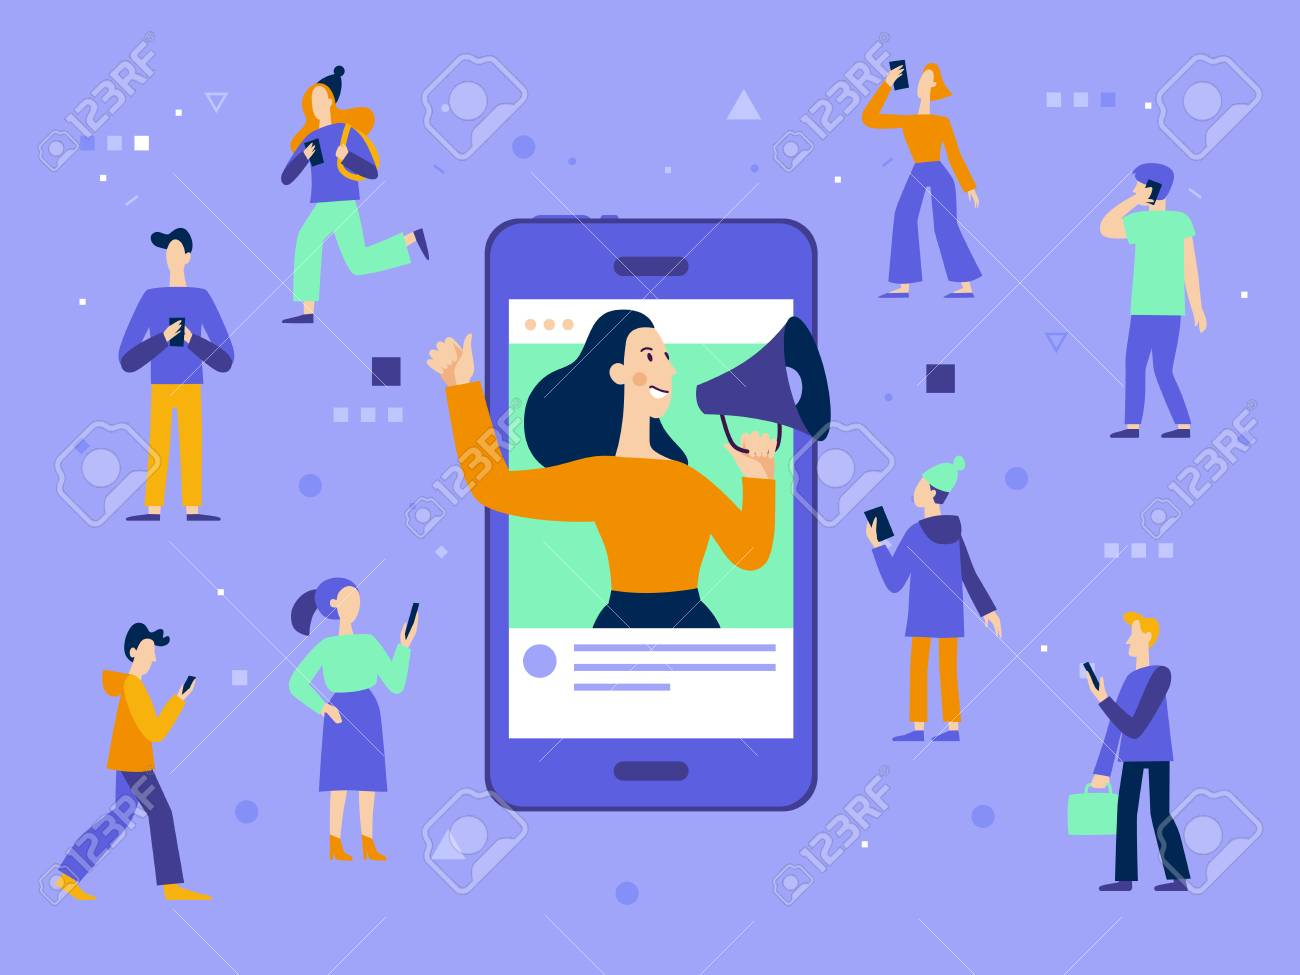 Vector illustration in flat simple style with characters - influencer marketing concept - blogger promotion services and goods for her followers online - 112689924